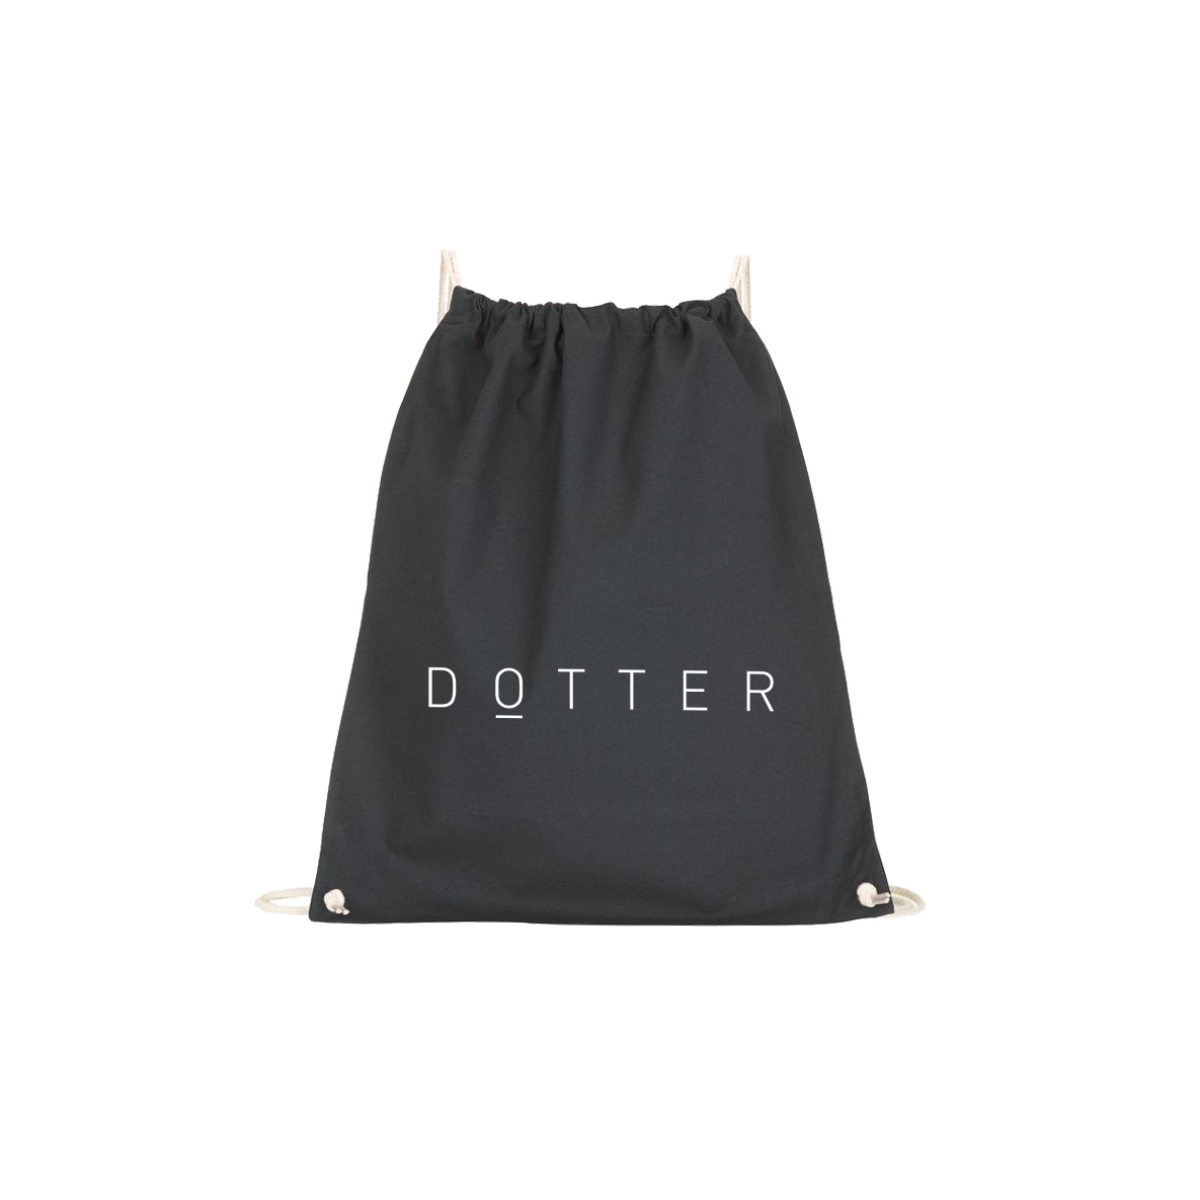 Dotter backpack